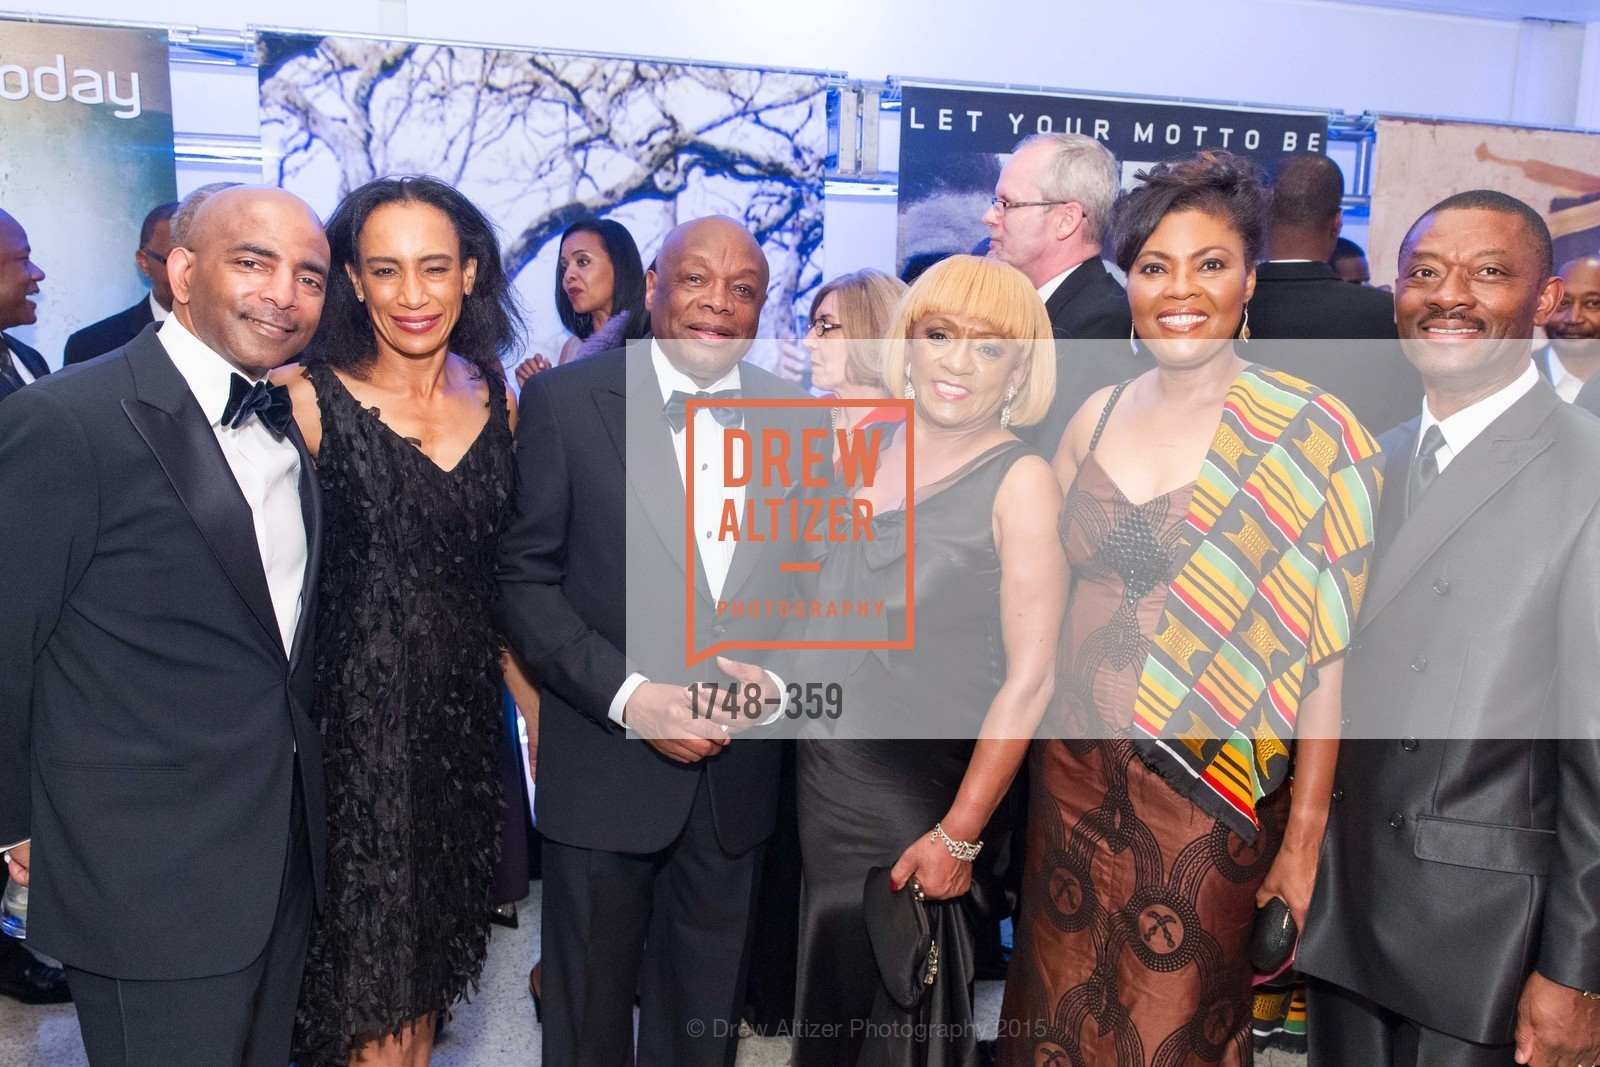 Steve Bowdry, Dail St. Claire, Willie Brown, Brenda Wright, Gladys Moore, Kofi Bonner, 2015 MoAD Gala: Finding the I in Diaspora, MoAD Museum & The St. Regis, October 10th, 2015,Drew Altizer, Drew Altizer Photography, full-service agency, private events, San Francisco photographer, photographer california